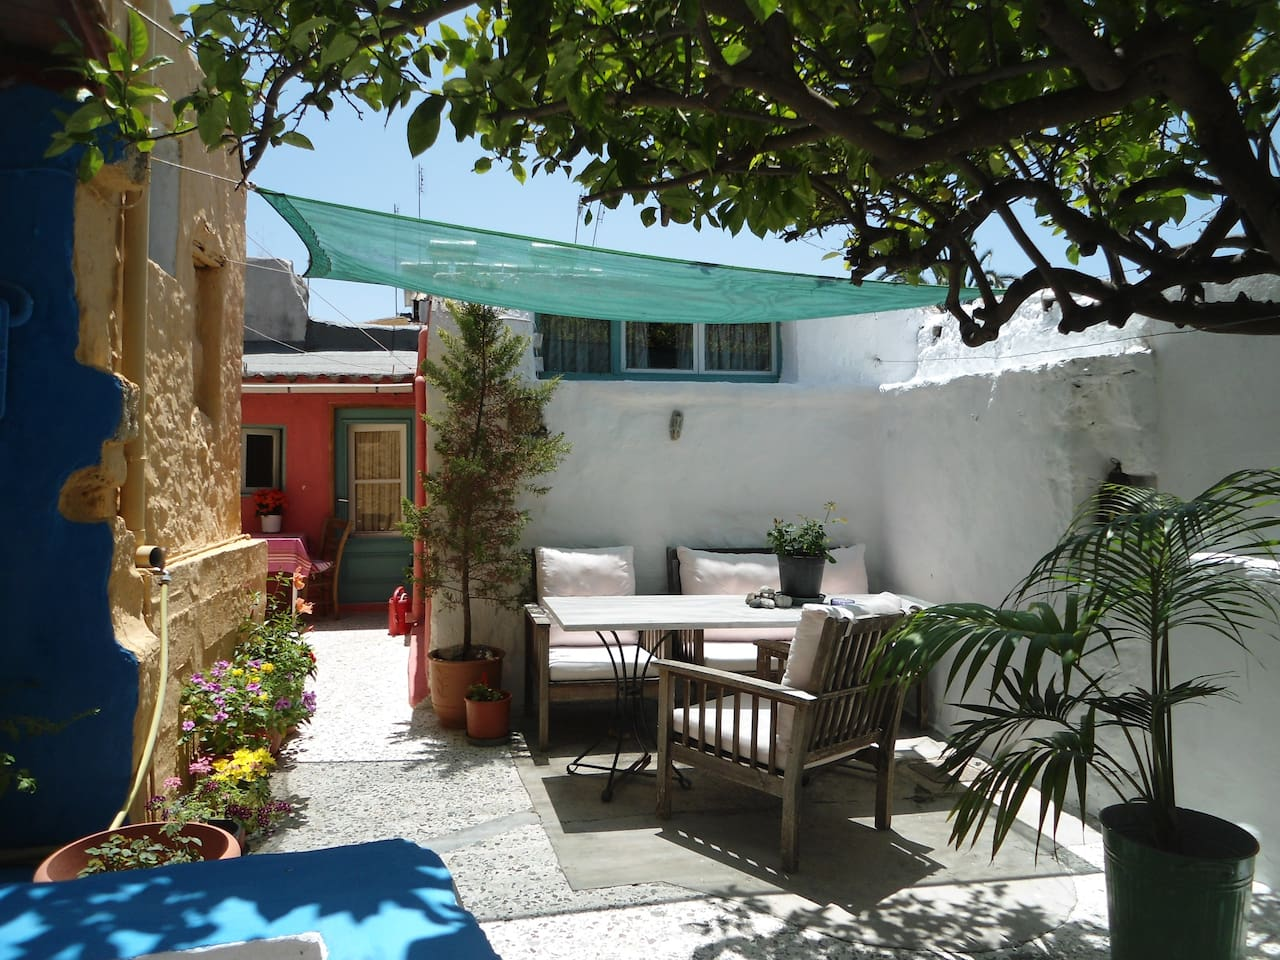 Up a few steps, the courtyard & guesthouse - June 2014